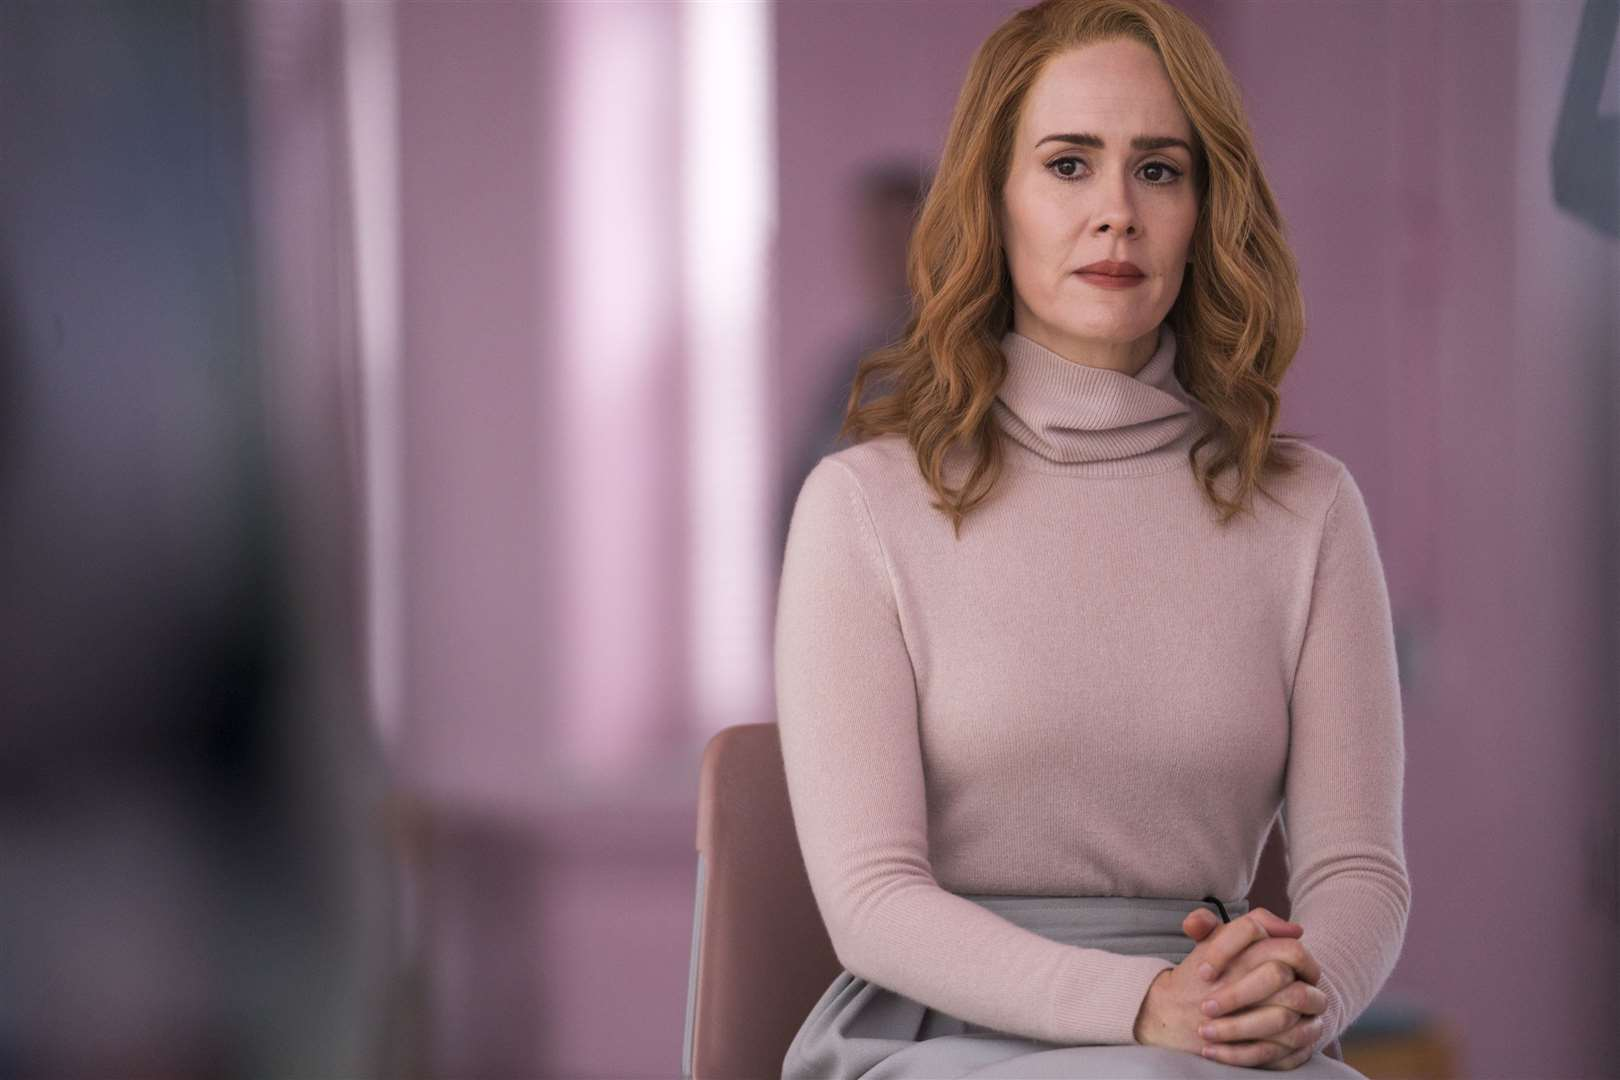 Sarah Paulson as Dr Ellie Staple in Glass. PA Photo/Universal Pictures/Jessica Kourkounis.